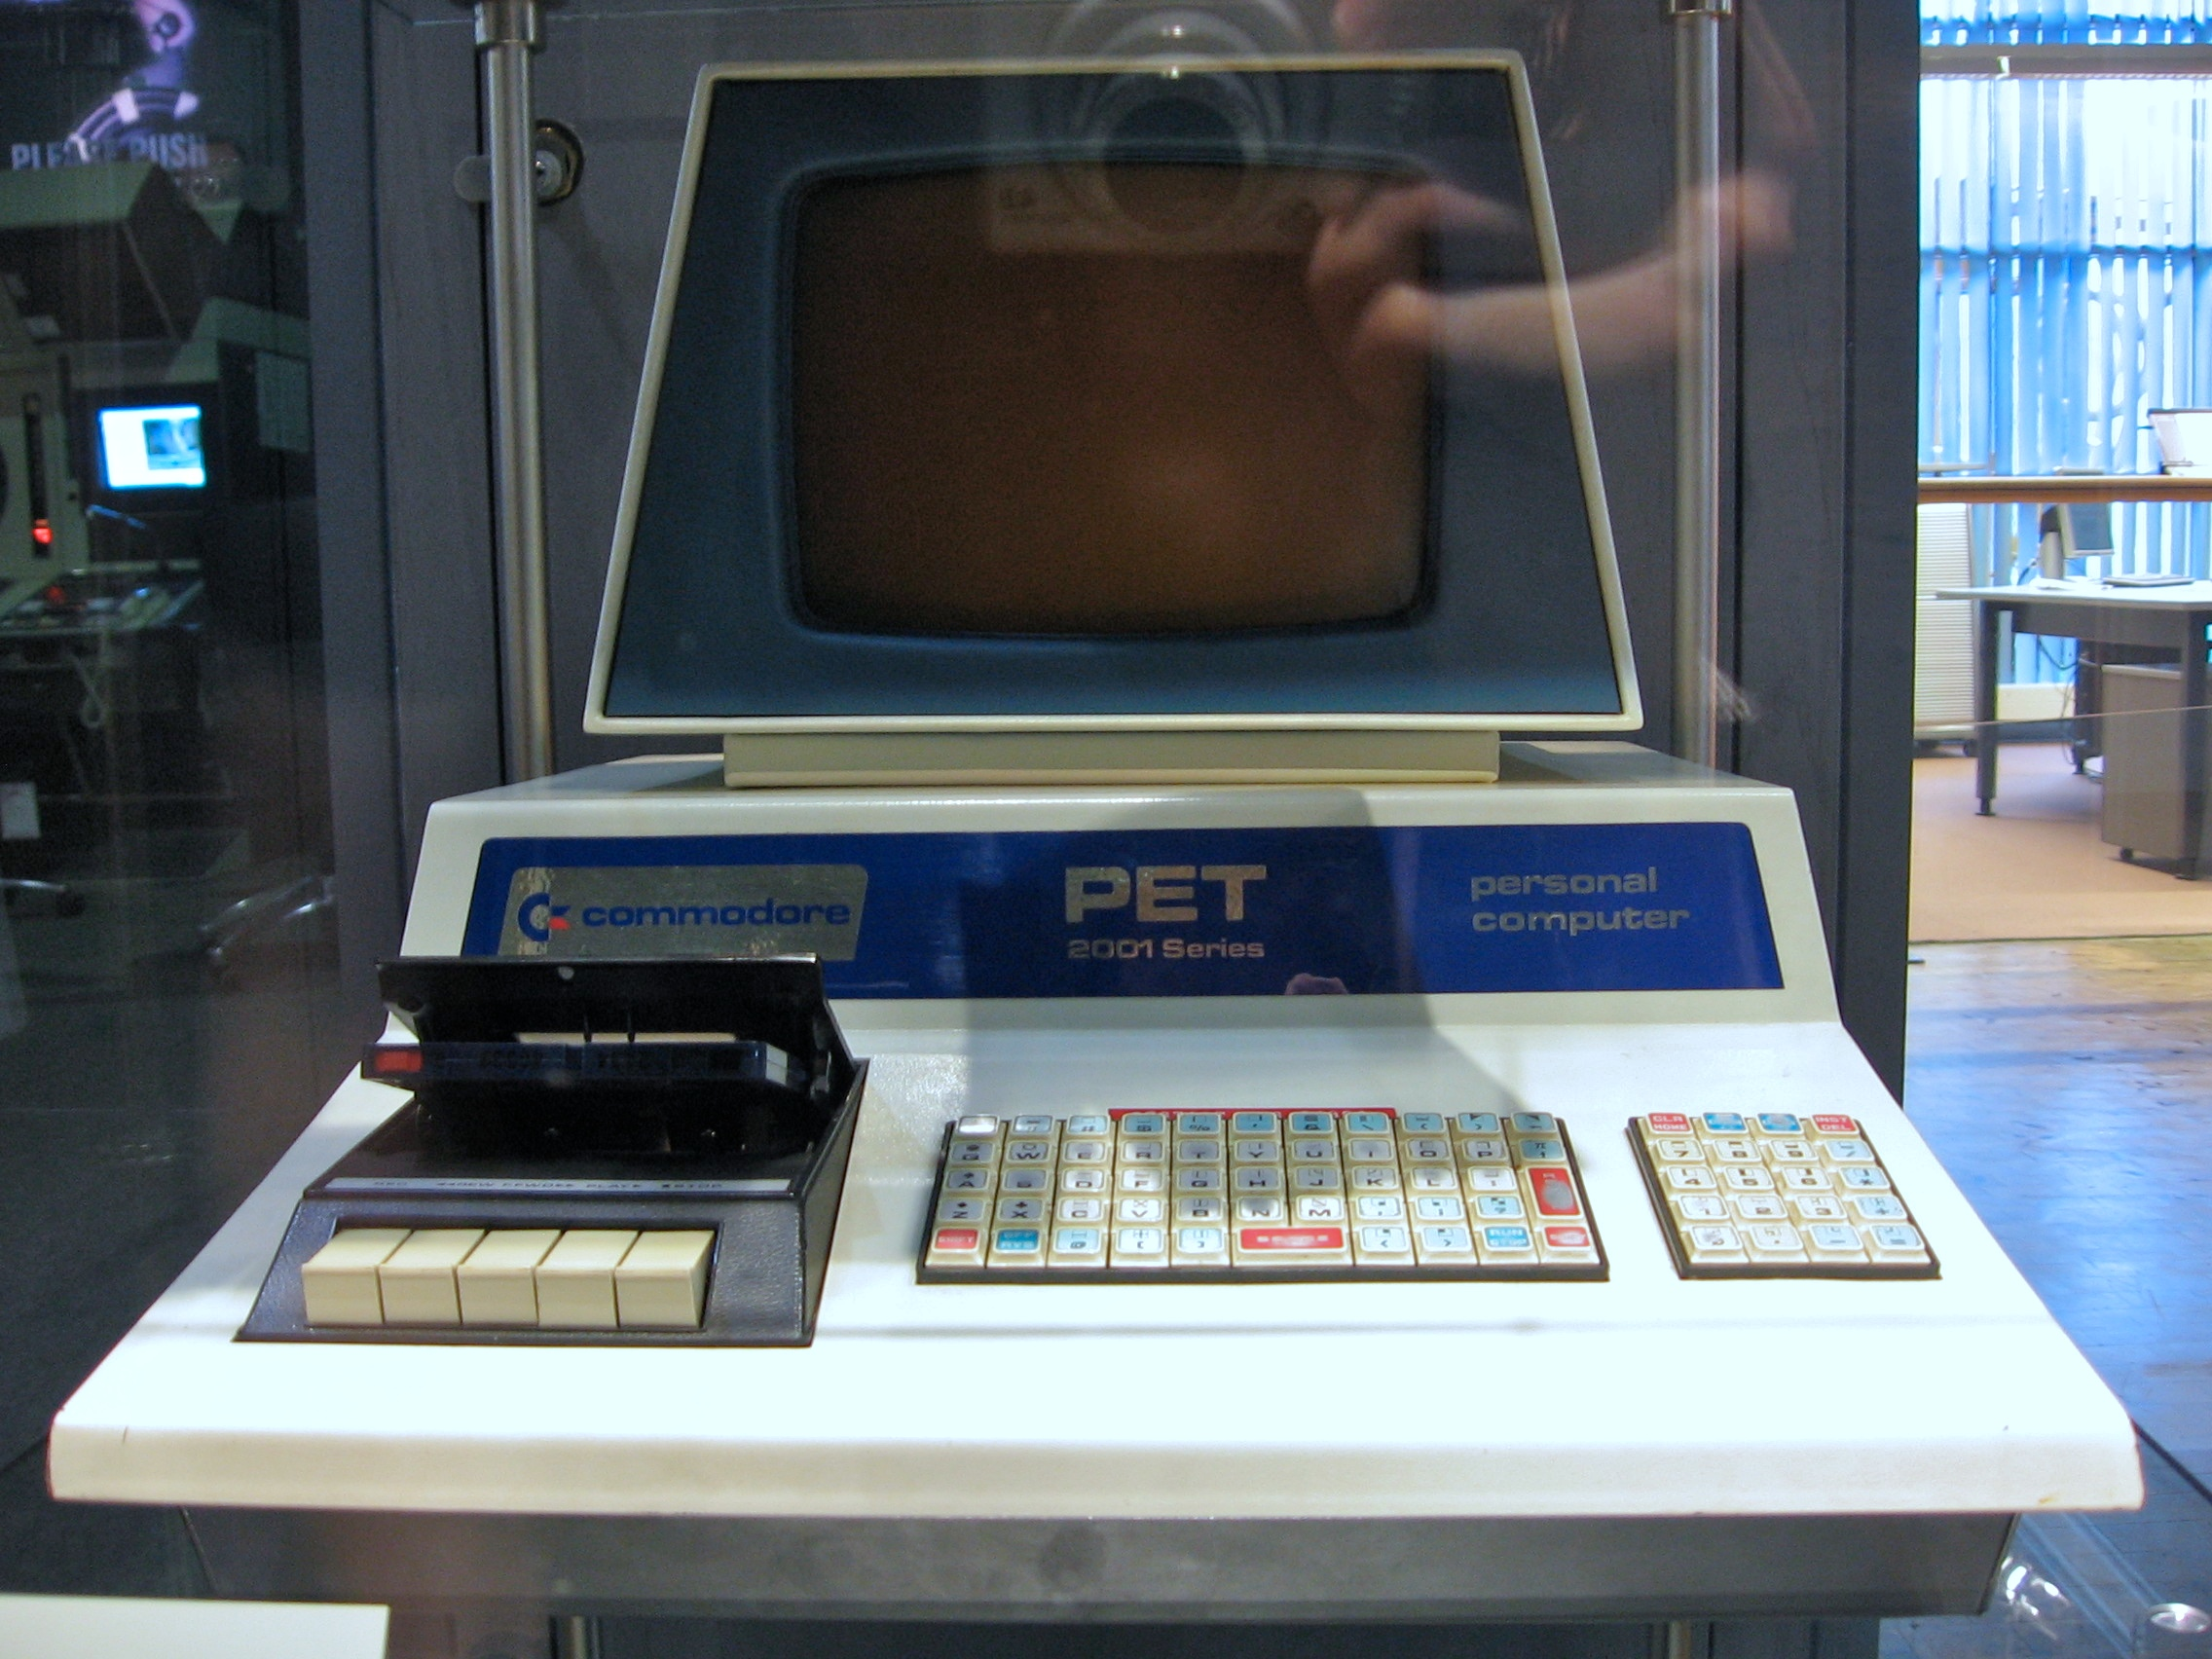 File:Commodore PET 2001 2.jpg - Wikimedia Commons